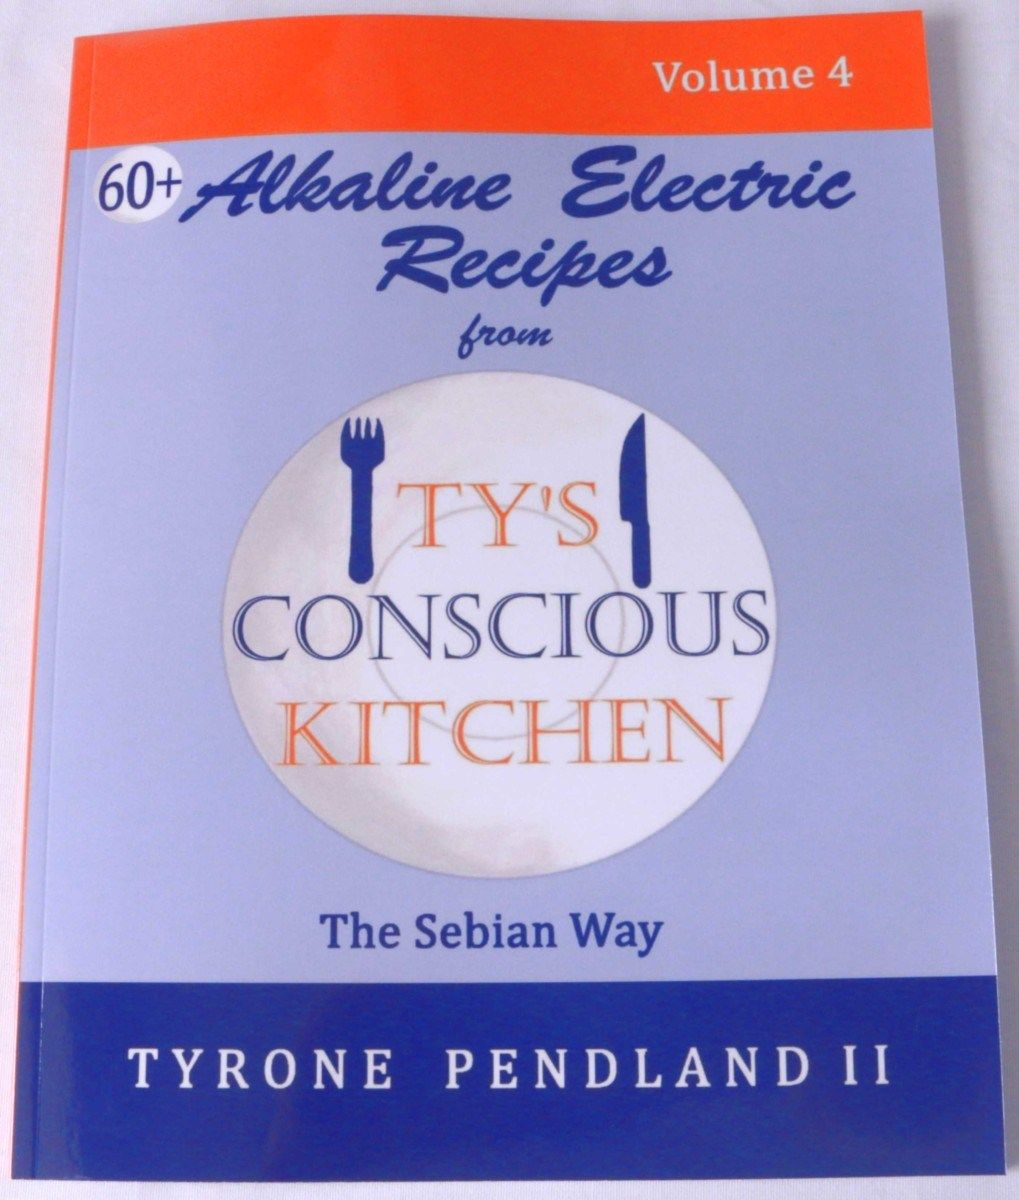 Ty's New Alkaline Electric Recipes Vol  4 Cookbook Is Here